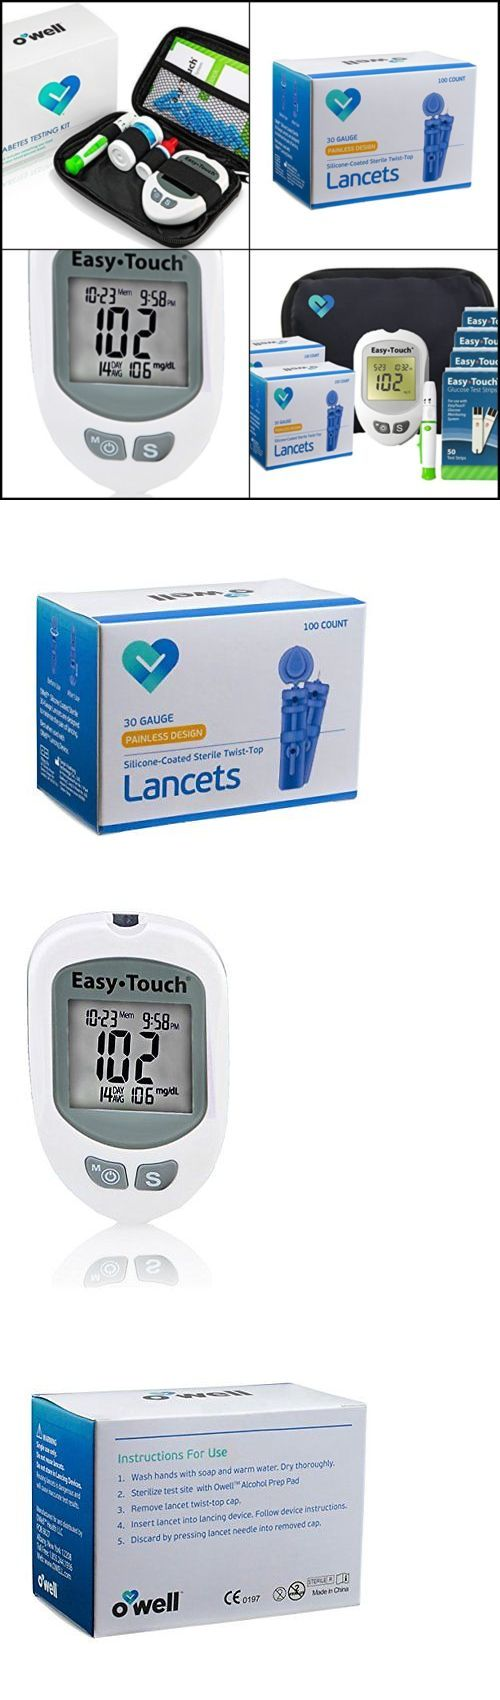 Glucose Monitors: Easy Touch Blood Glucose Monitor Diabetes Sugar Meter Tester Kit 200 Test Strips -> BUY IT NOW ONLY: $74.99 on eBay!